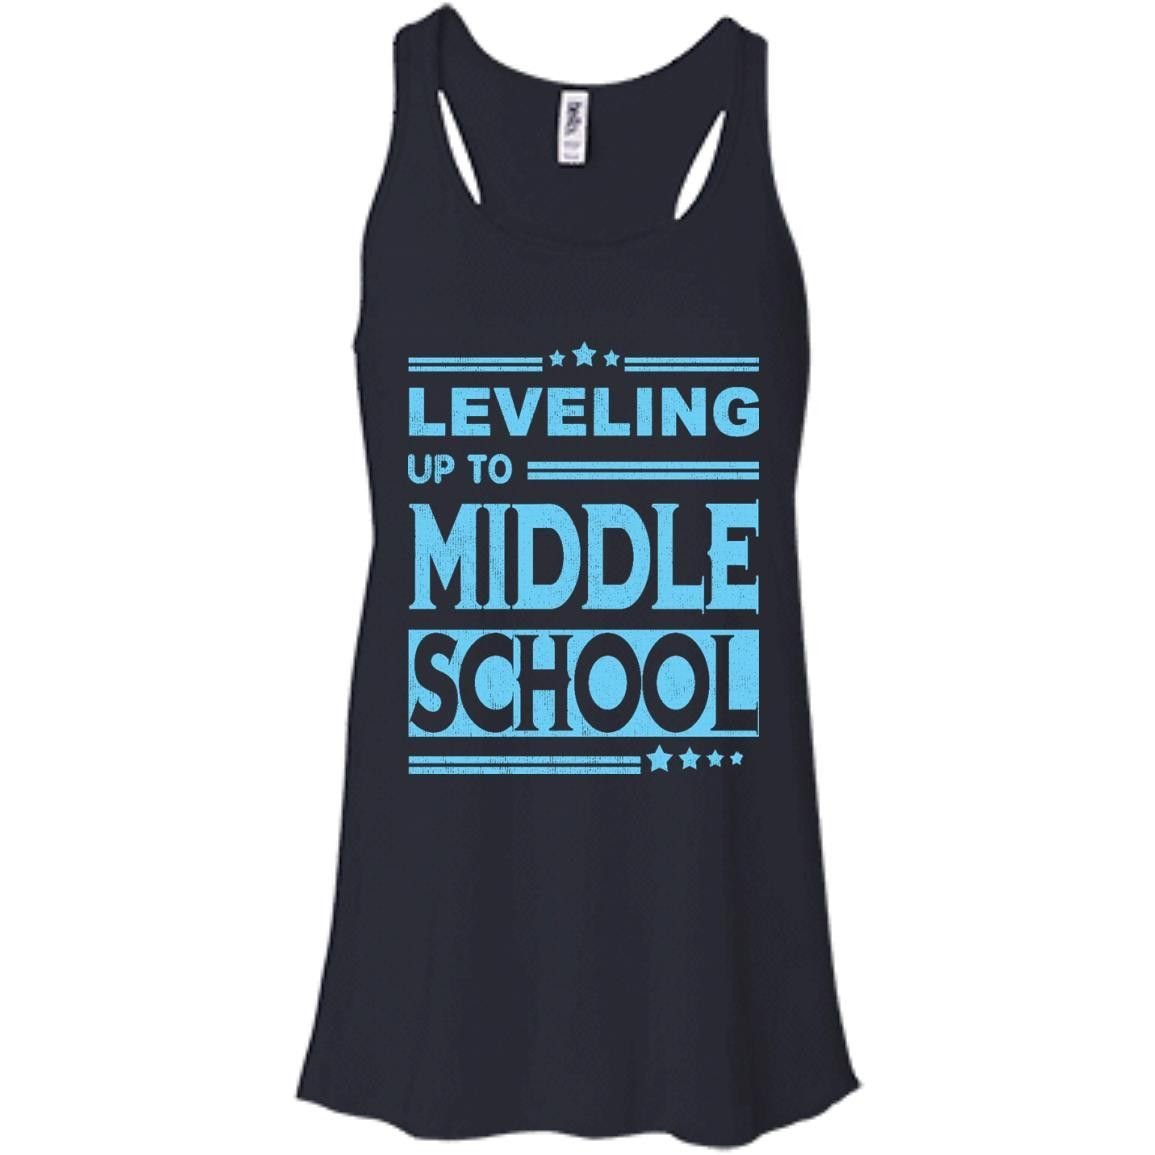 Leveling Up To Middle School baby blue B8800 Bella + Canvas Flowy Racerback Tank